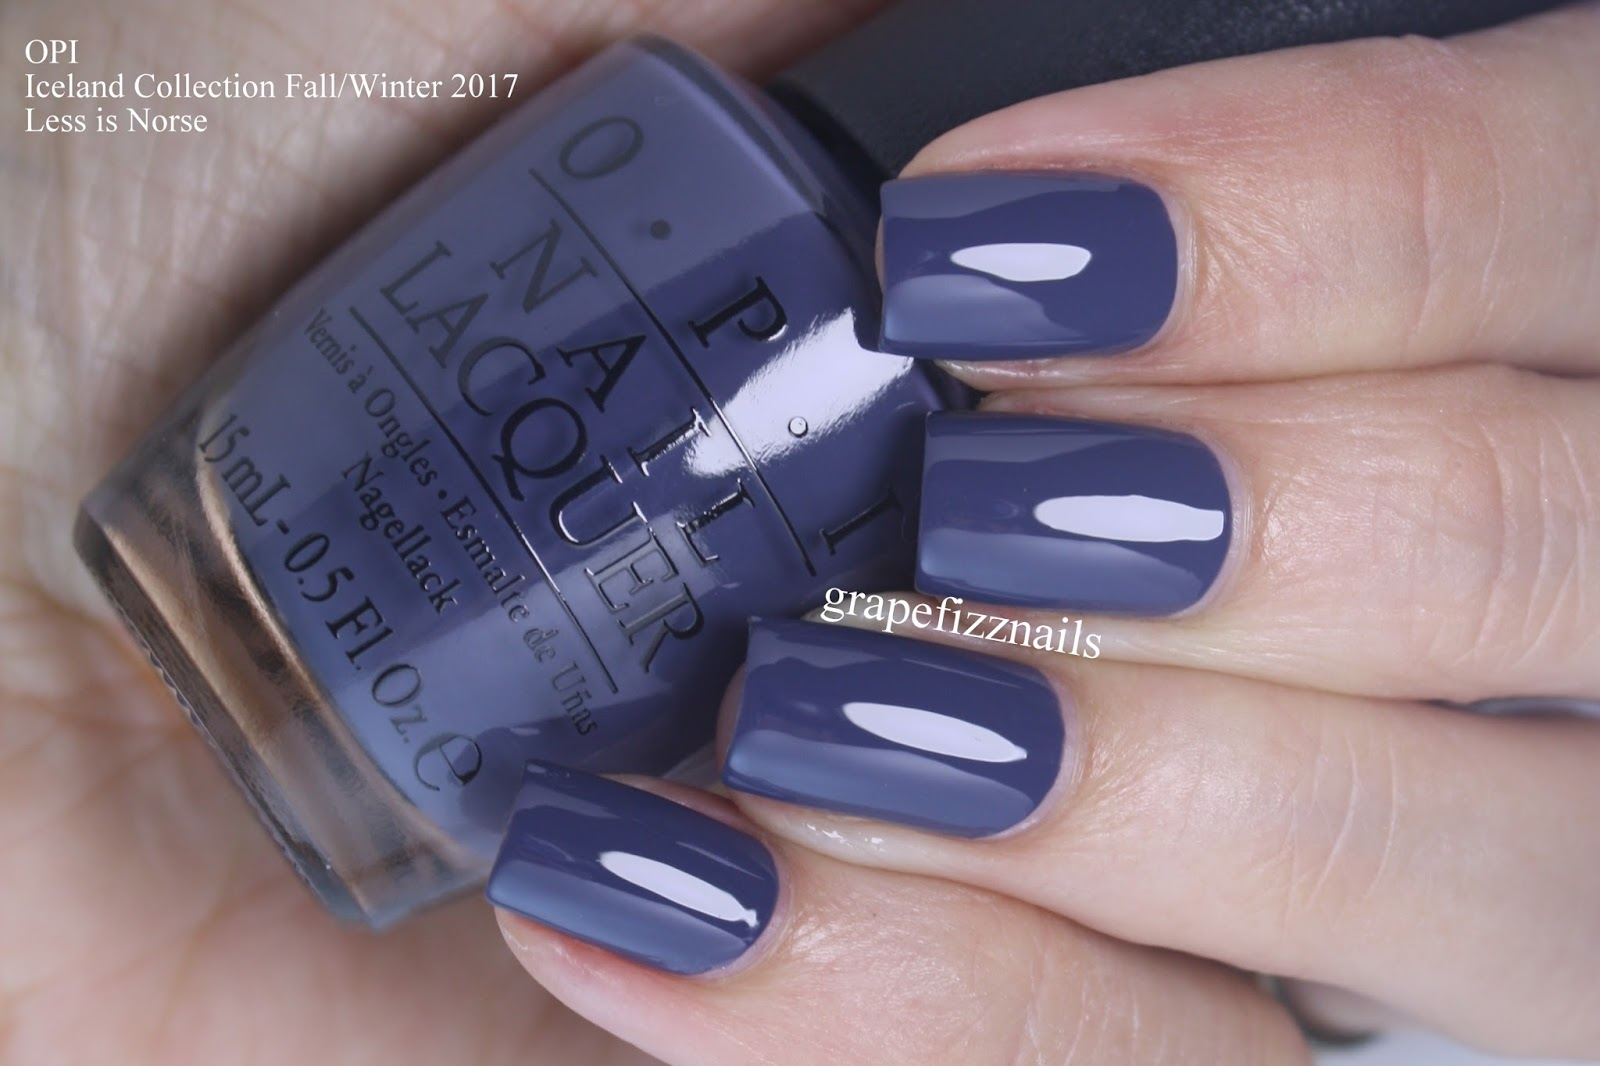 Grape Fizz Nails: OPI Iceland Collection Fall/Winter 2017